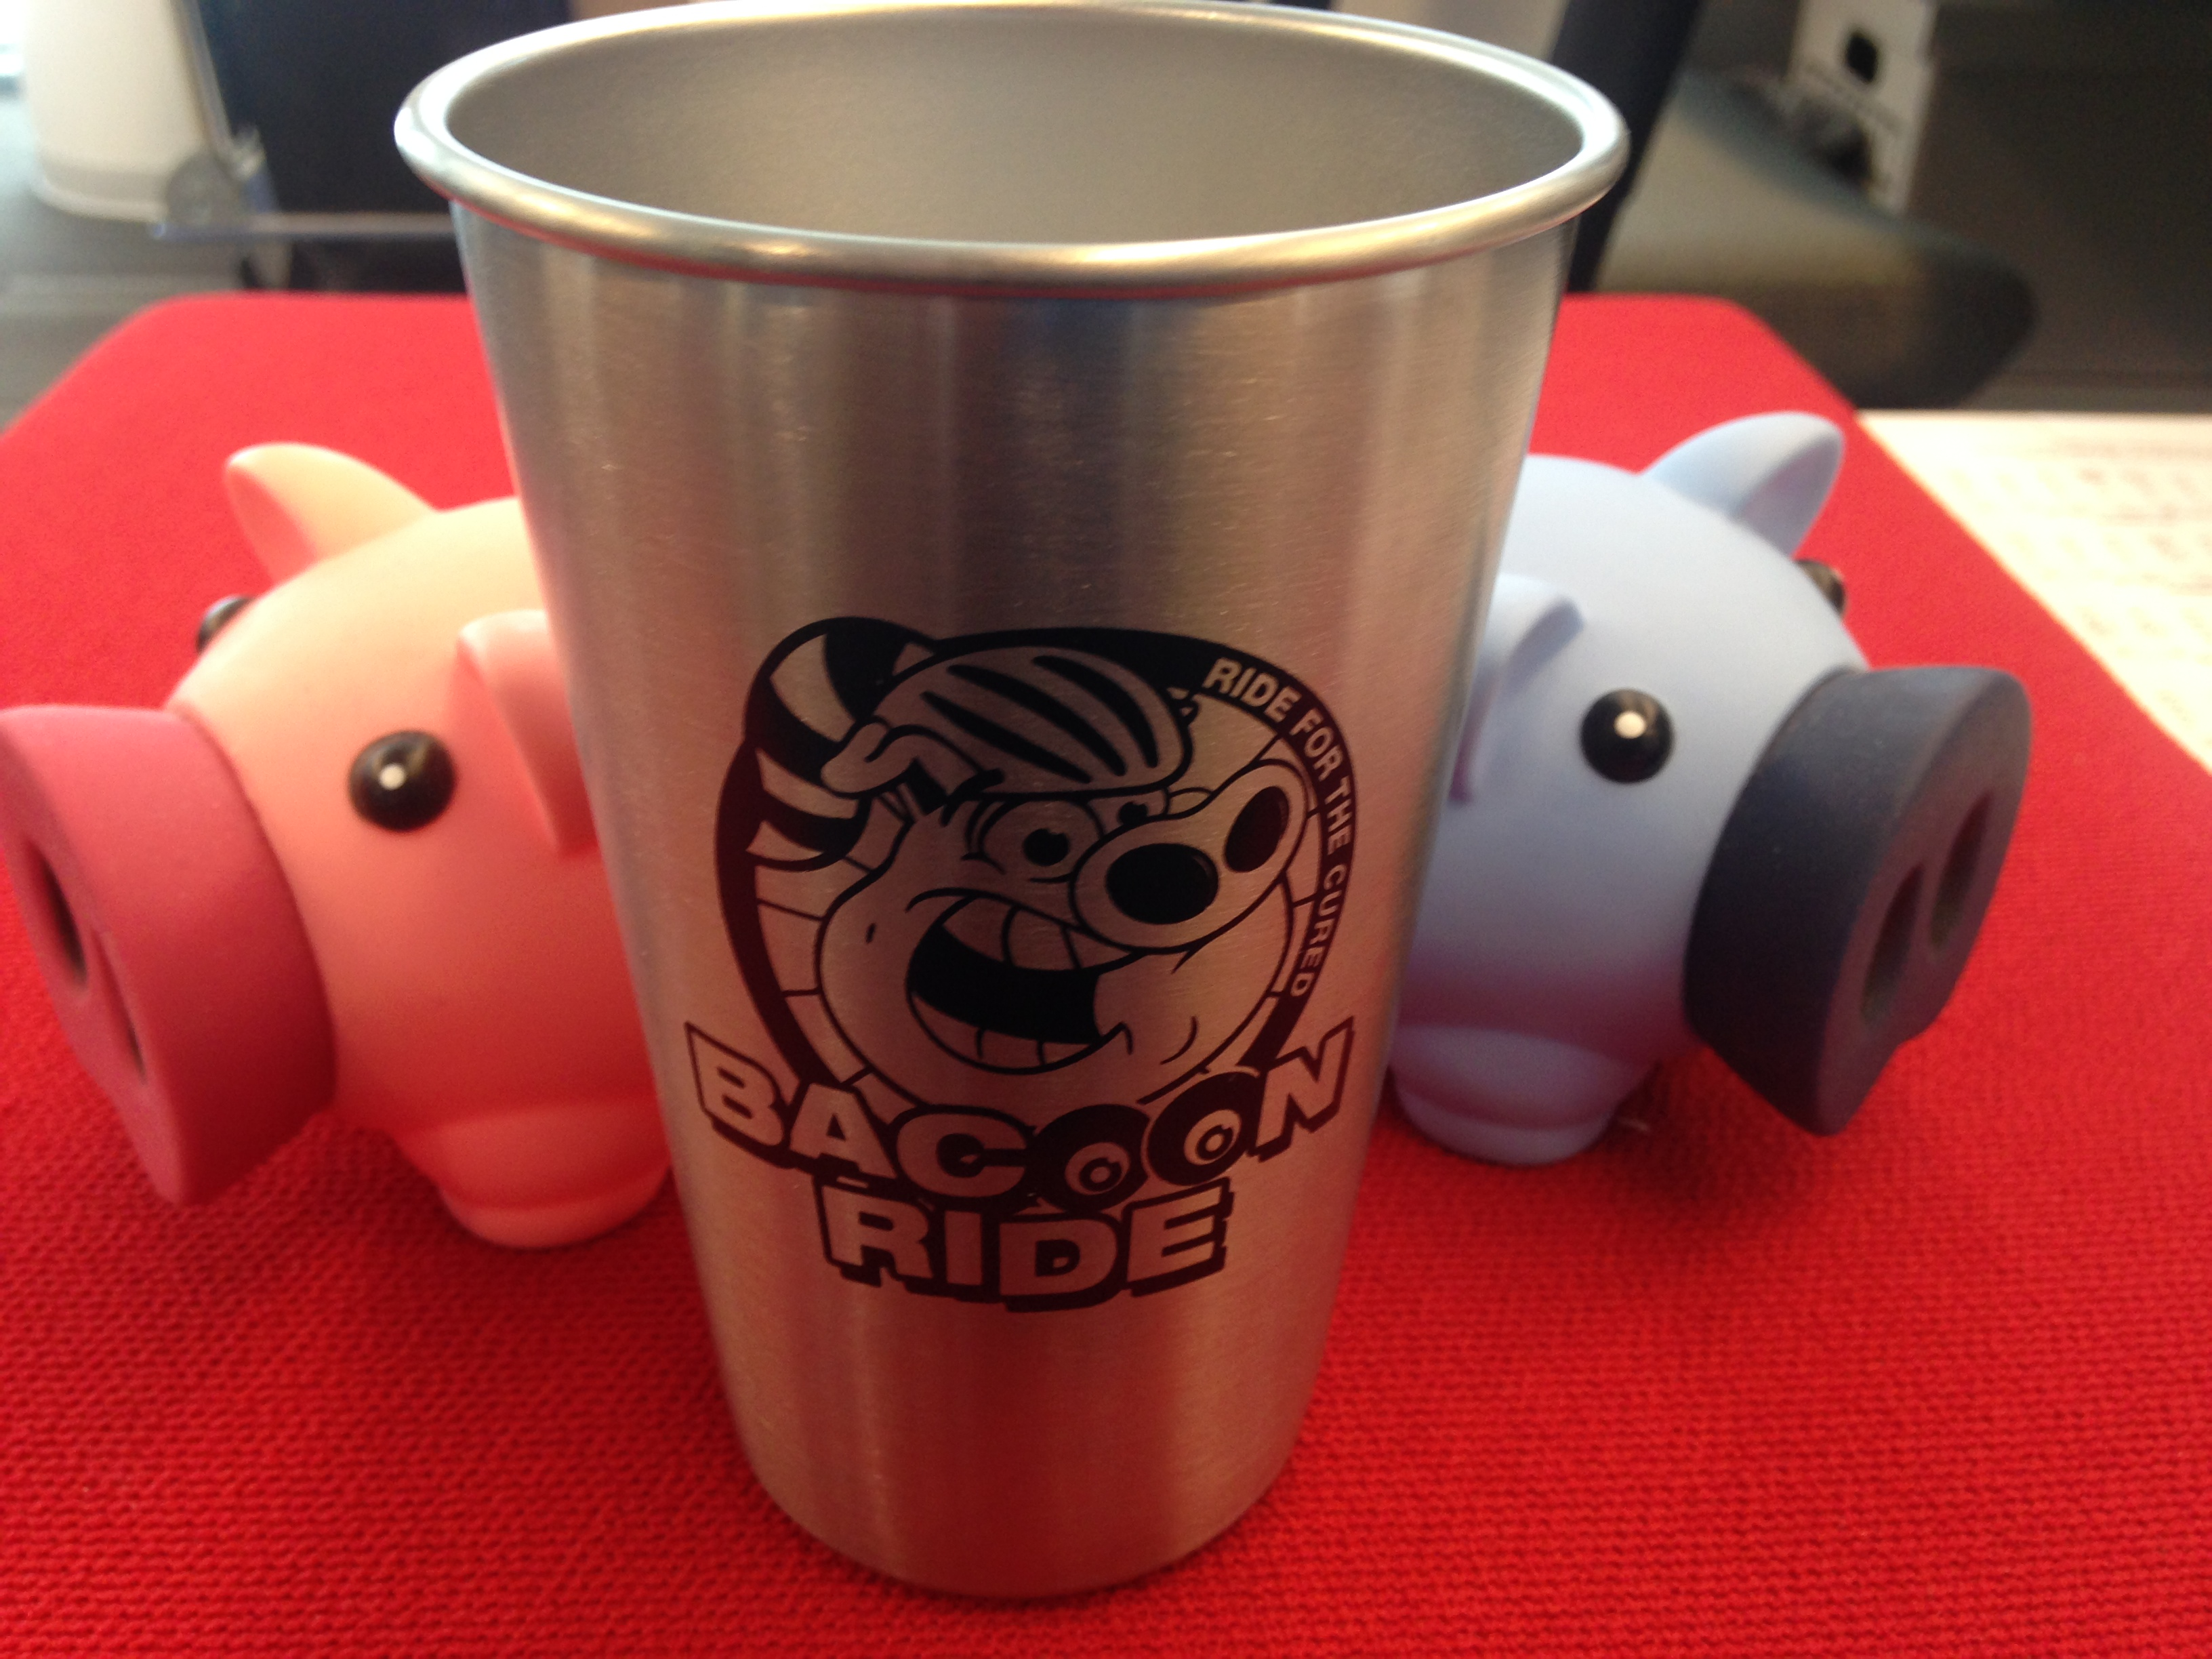 Early-bird Deadline Approaches for BACooN RIDE!